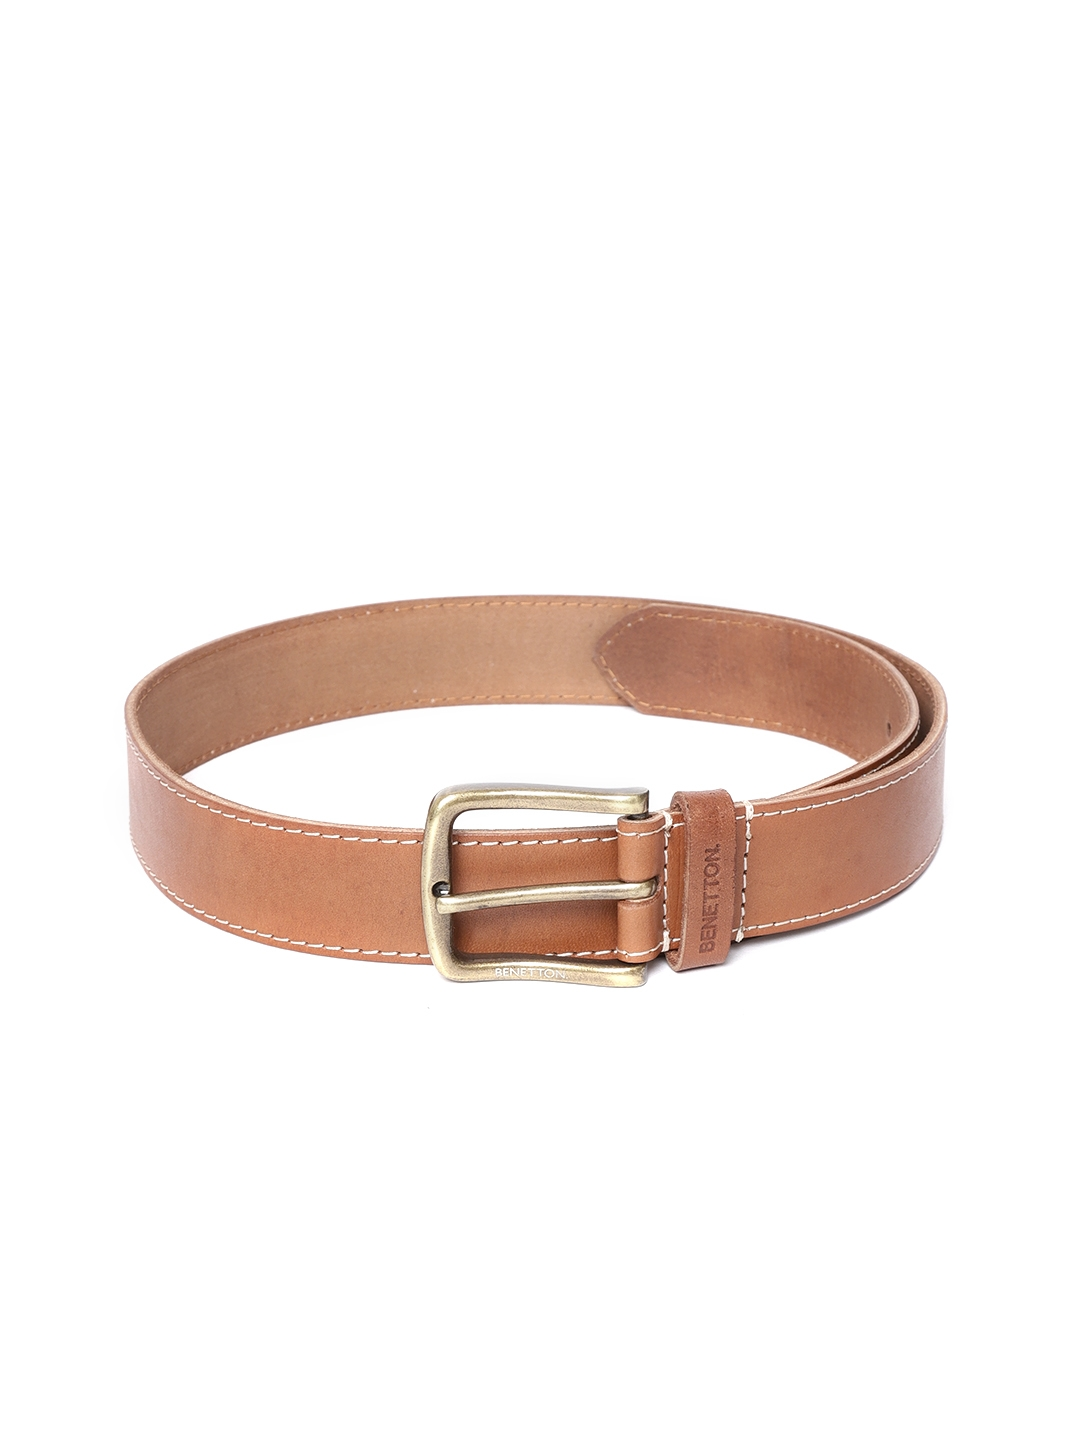 United Colors of Benetton Men Tan Brown Solid Leather Belt